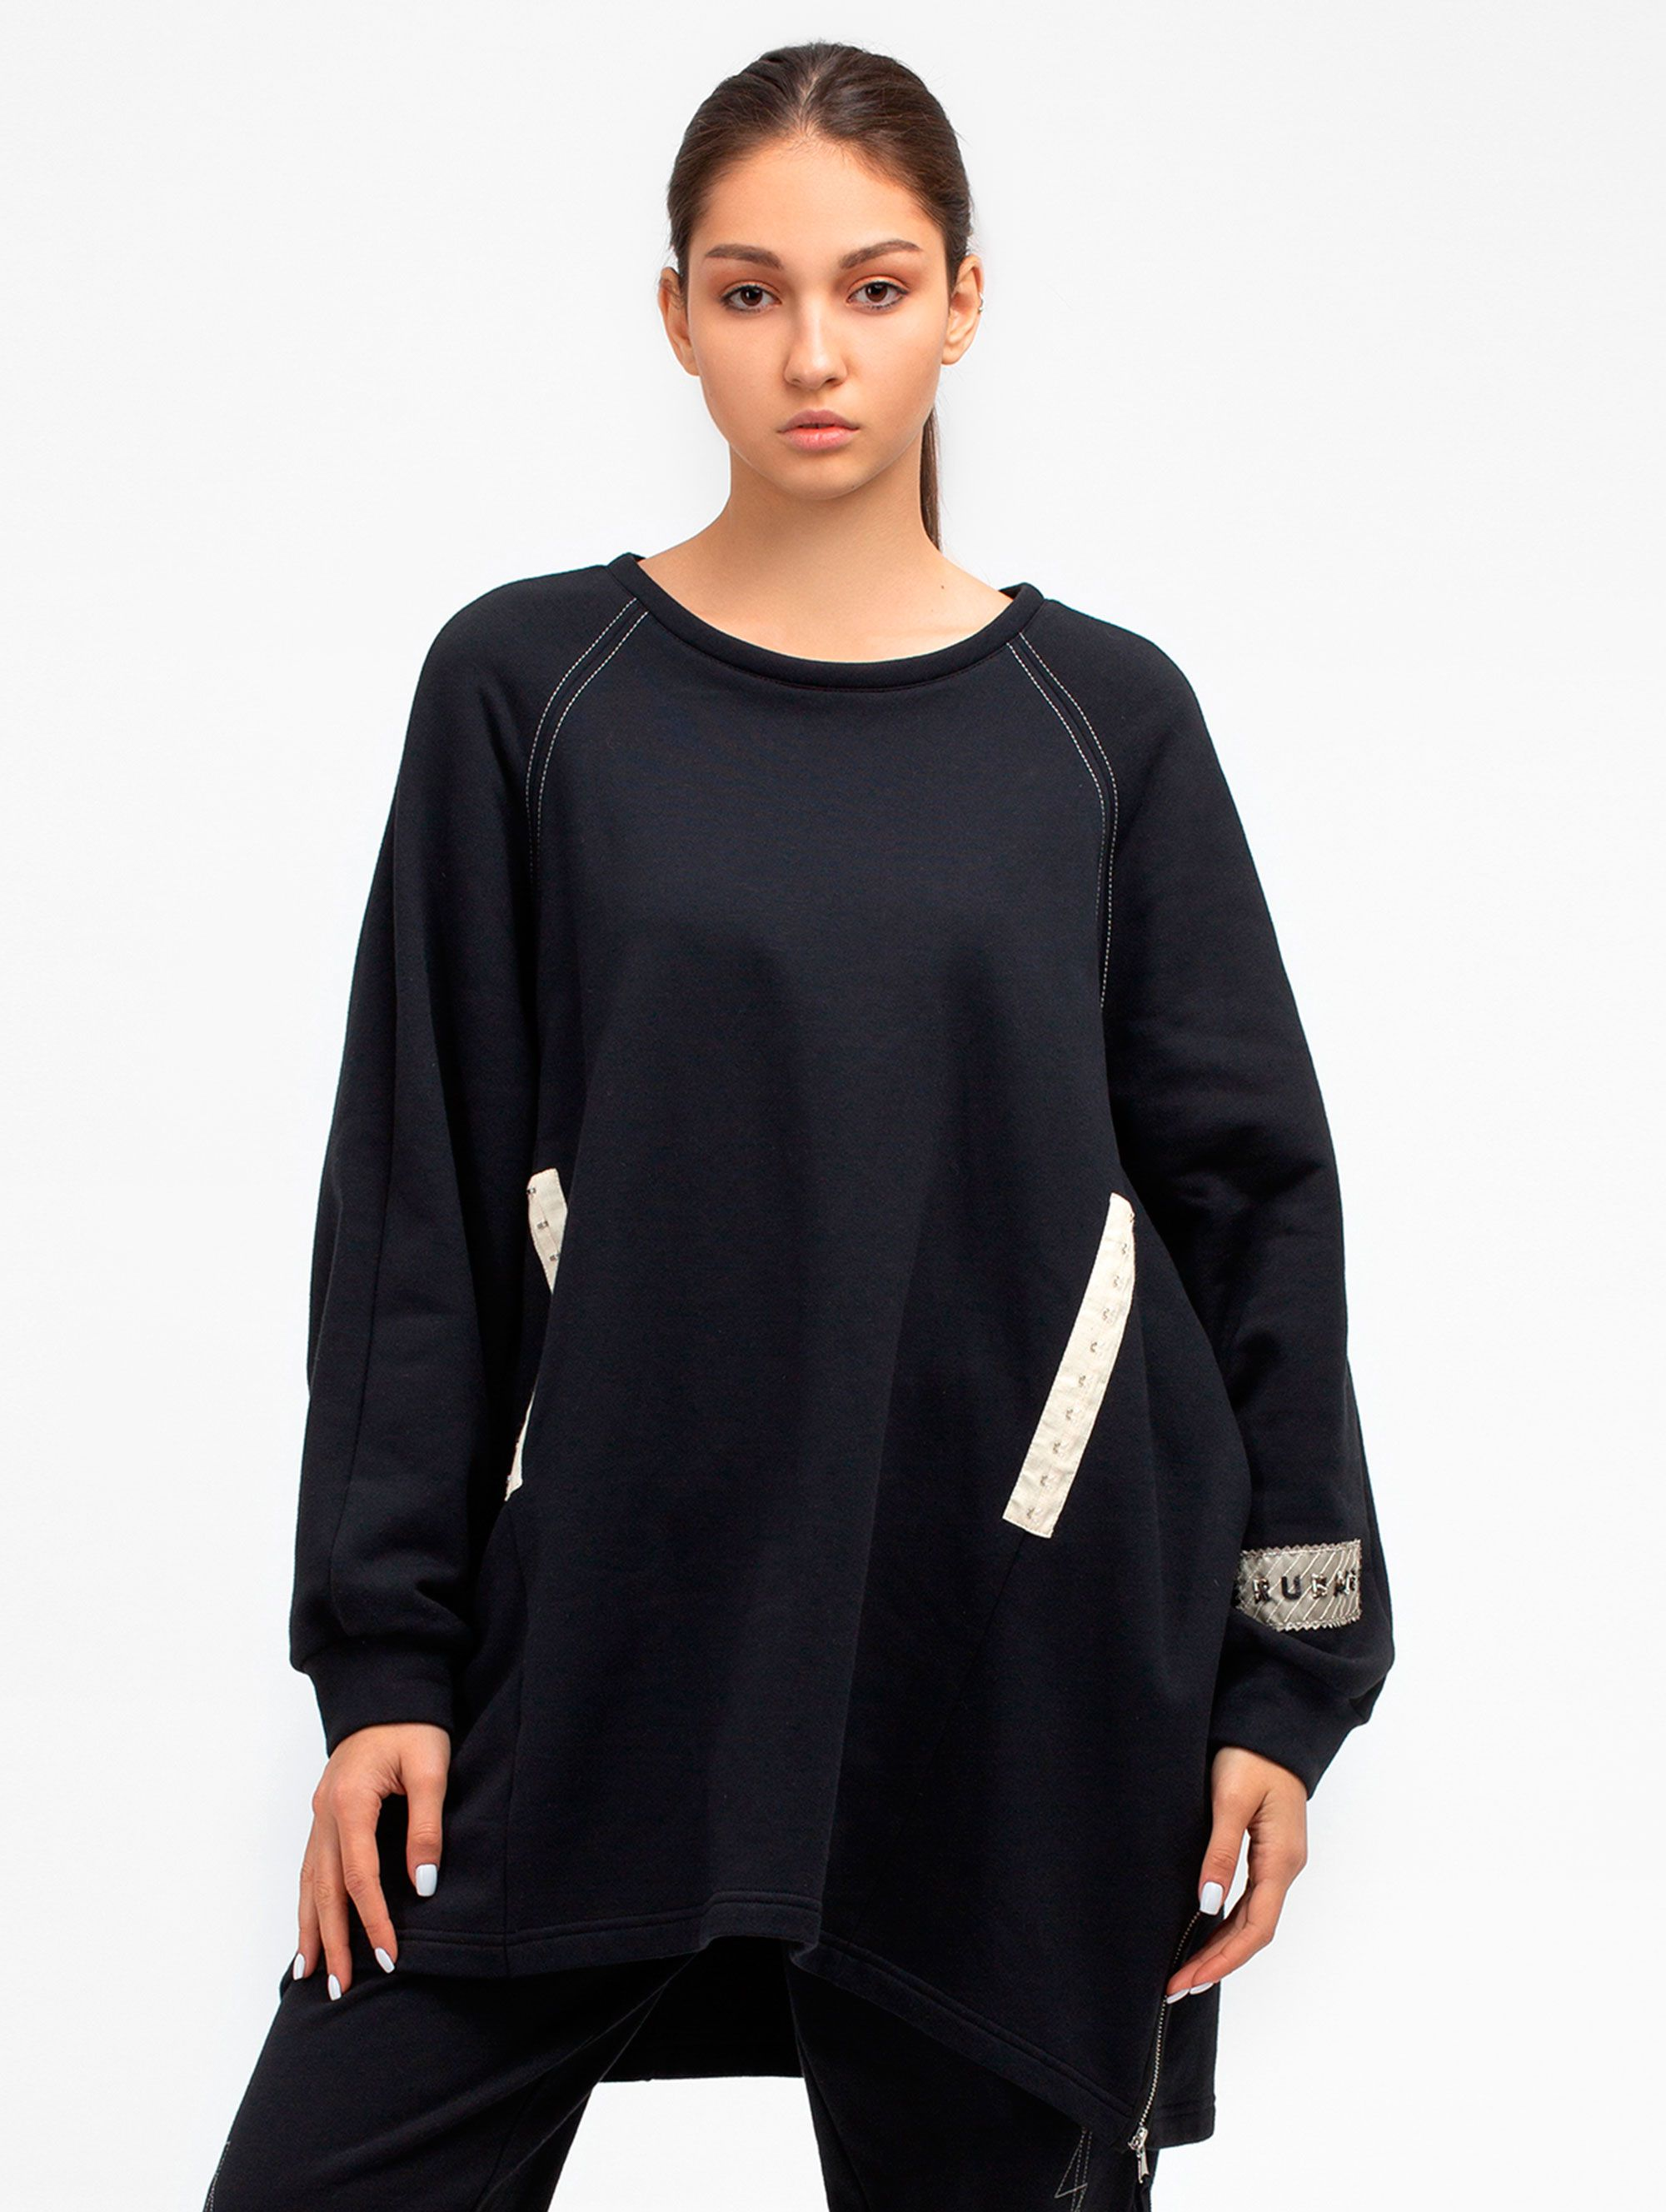 Ruban Knitted Sweatshirt